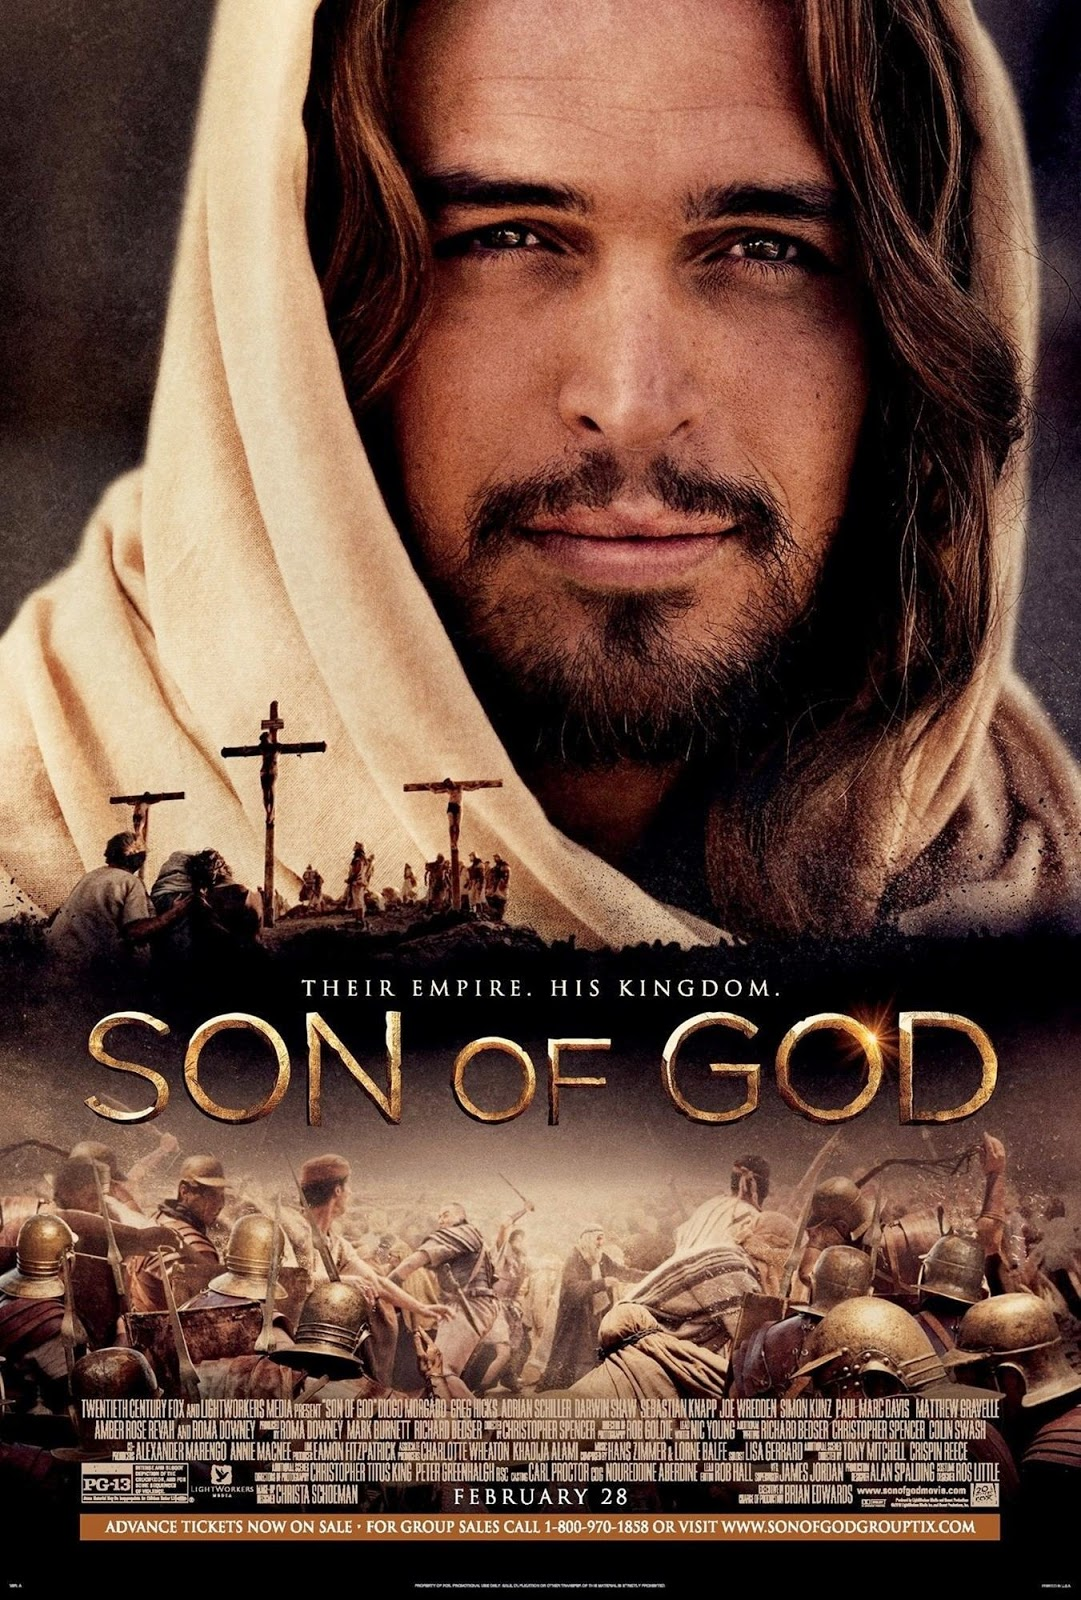 Jake says stuff!!: Compare and Contrast: 'Son of God' VS 'The